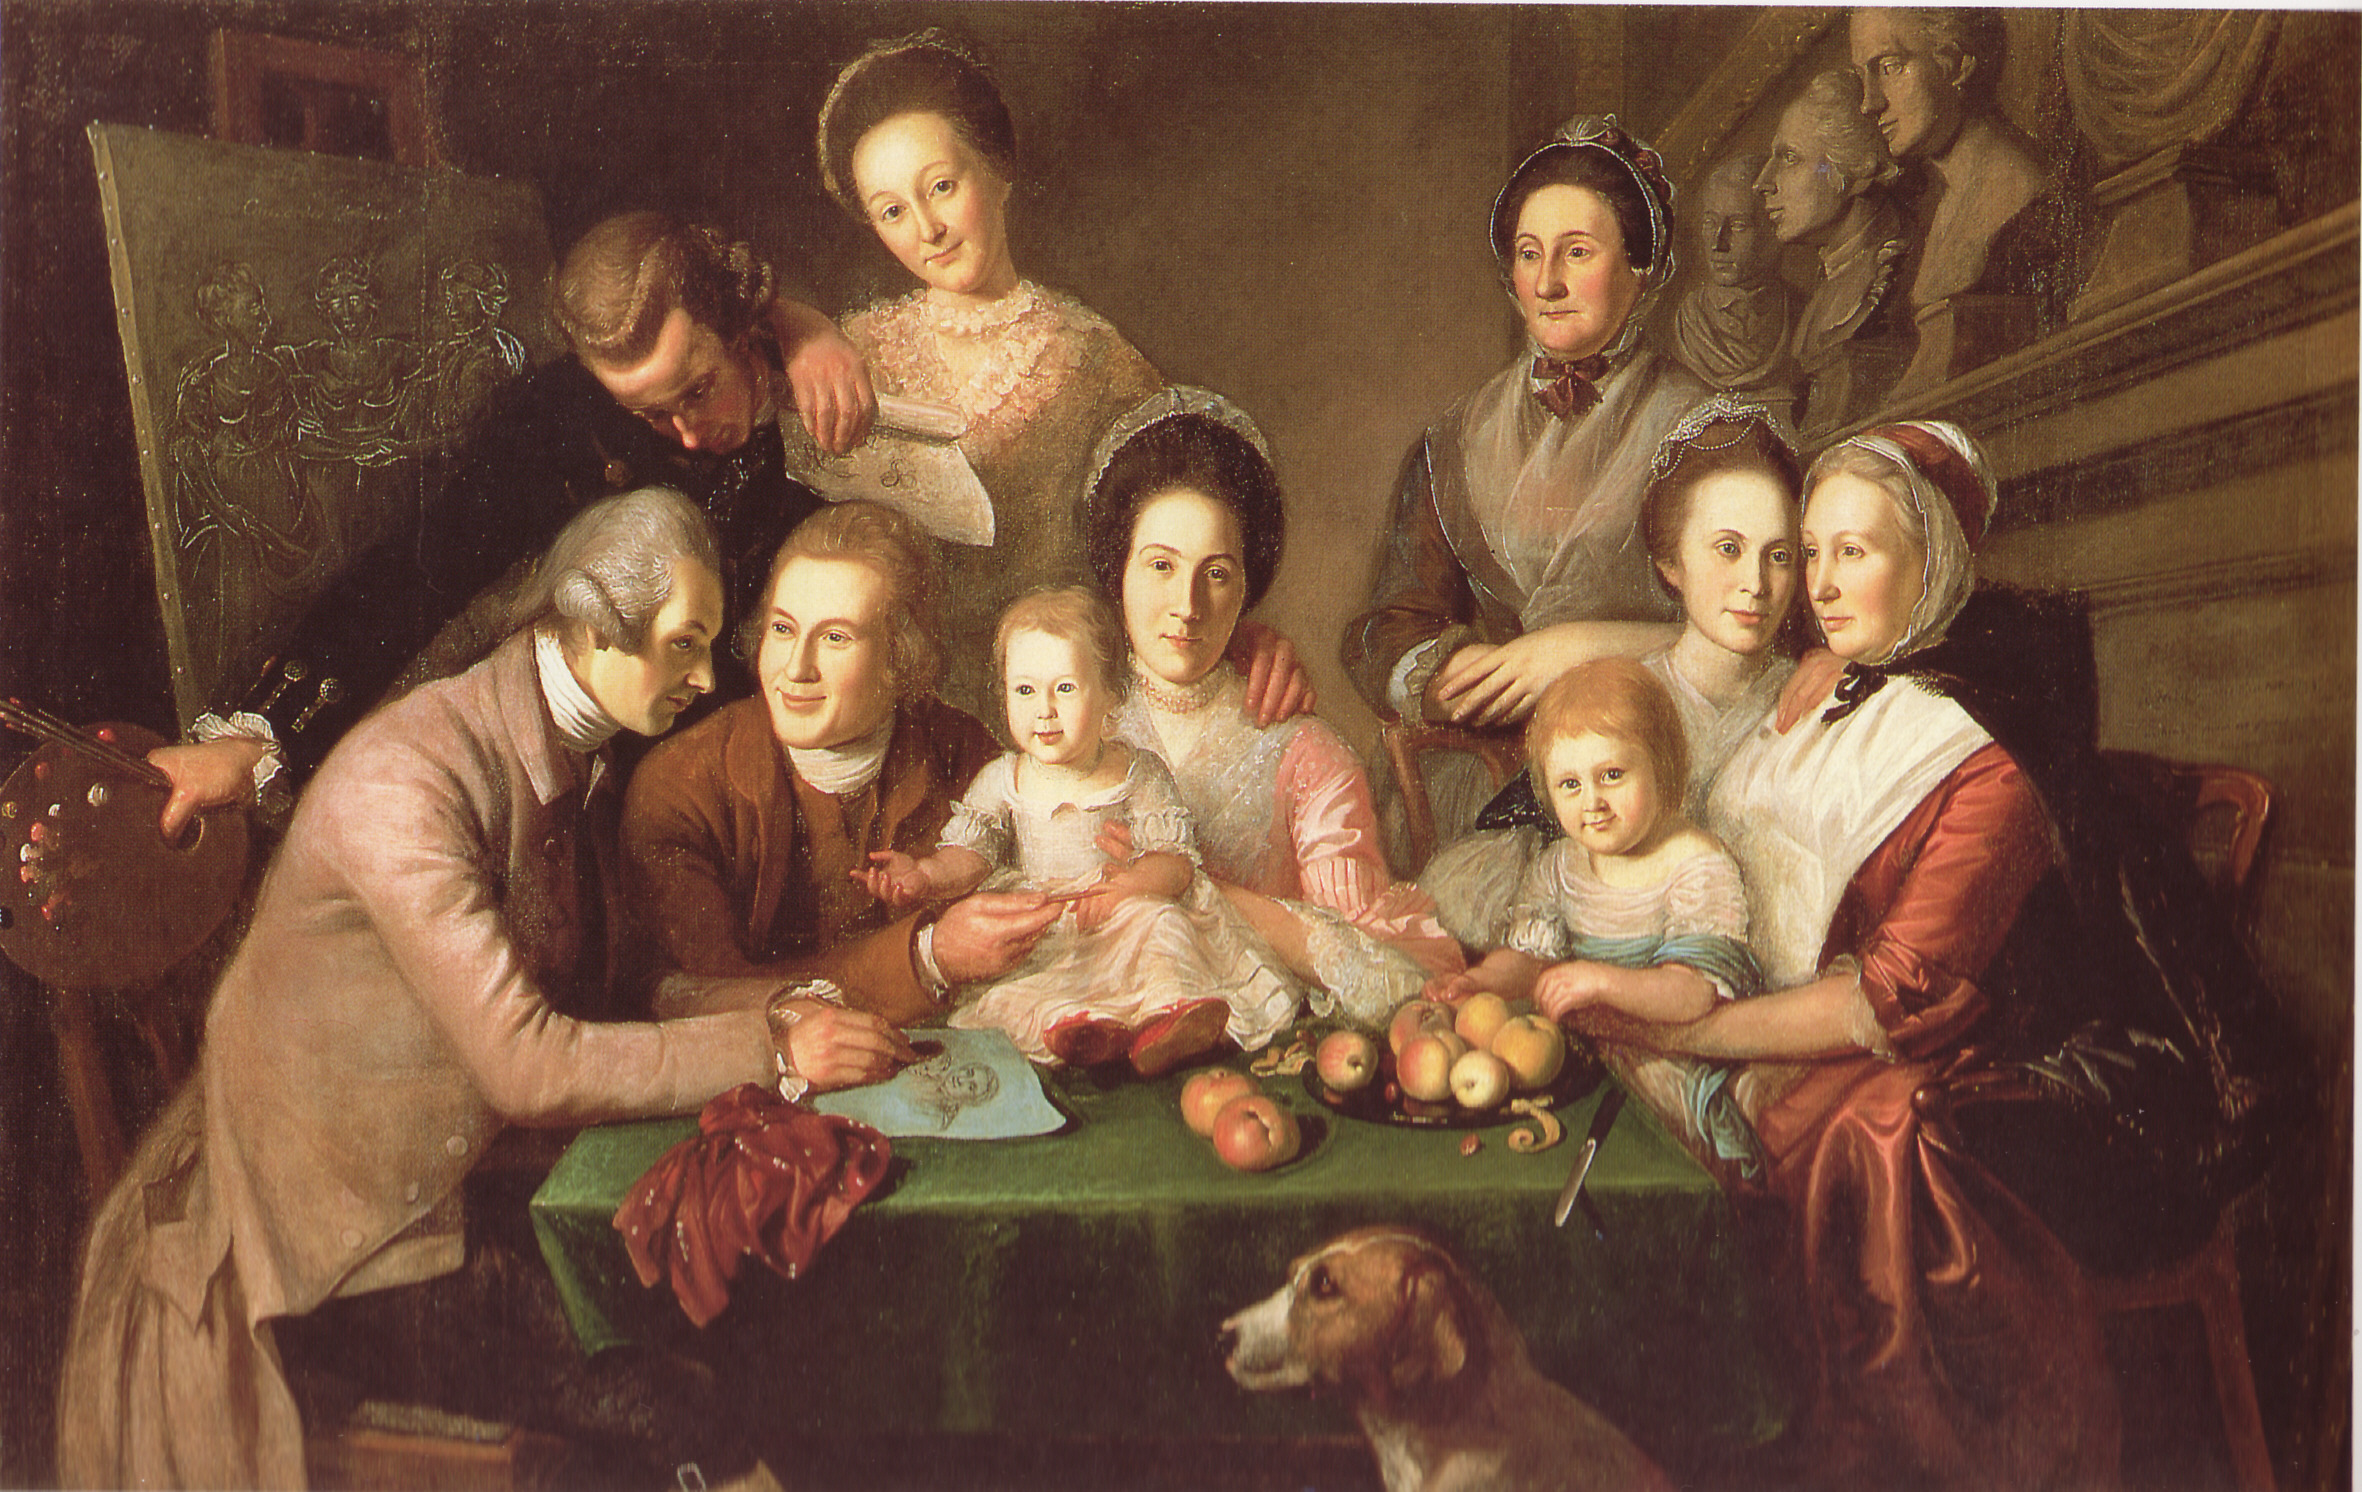 http://upload.wikimedia.org/wikipedia/commons/a/ae/The_peale_family_charles_willson_peale.jpg